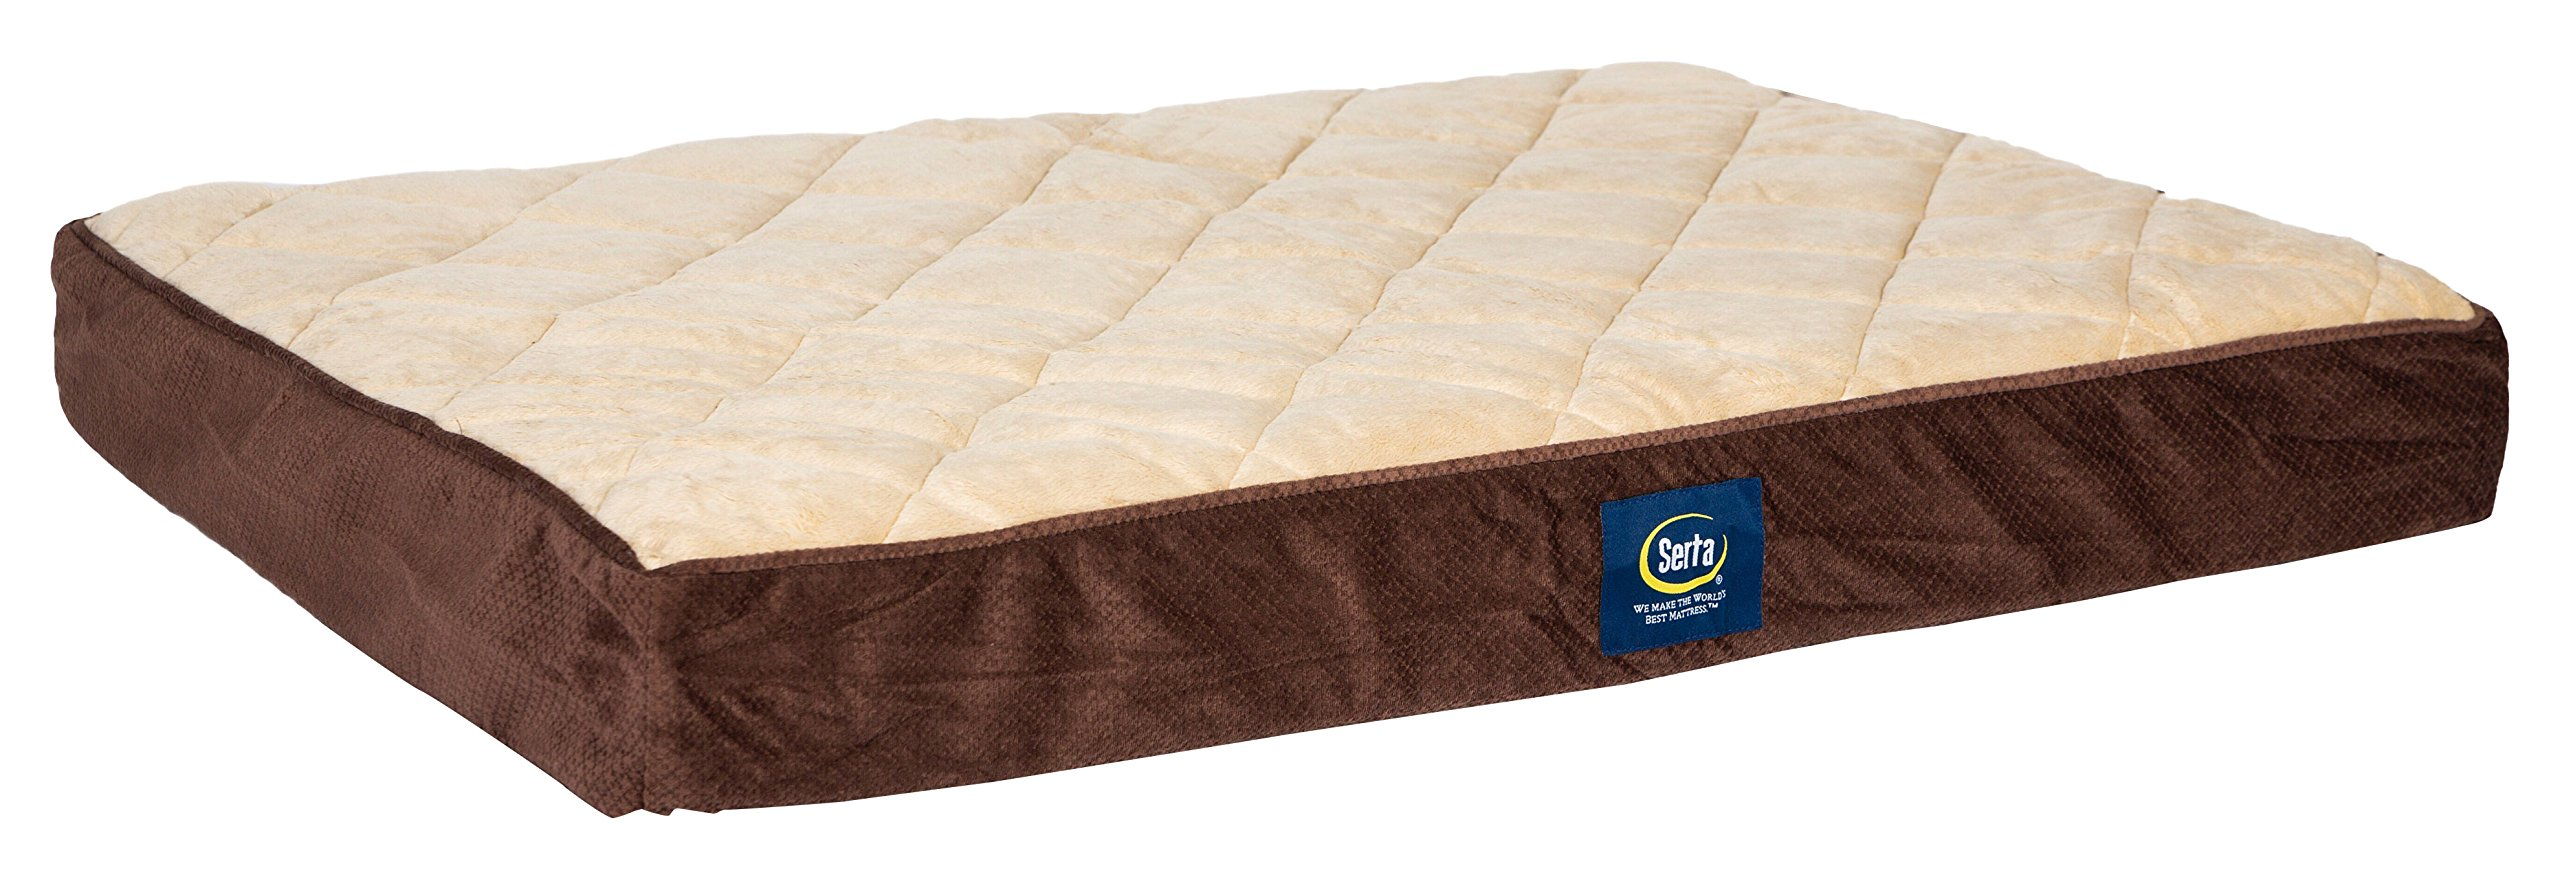 Serta Quilted Pillowtop Pet Bed Cover, Large Brown - Replacement Cover Only